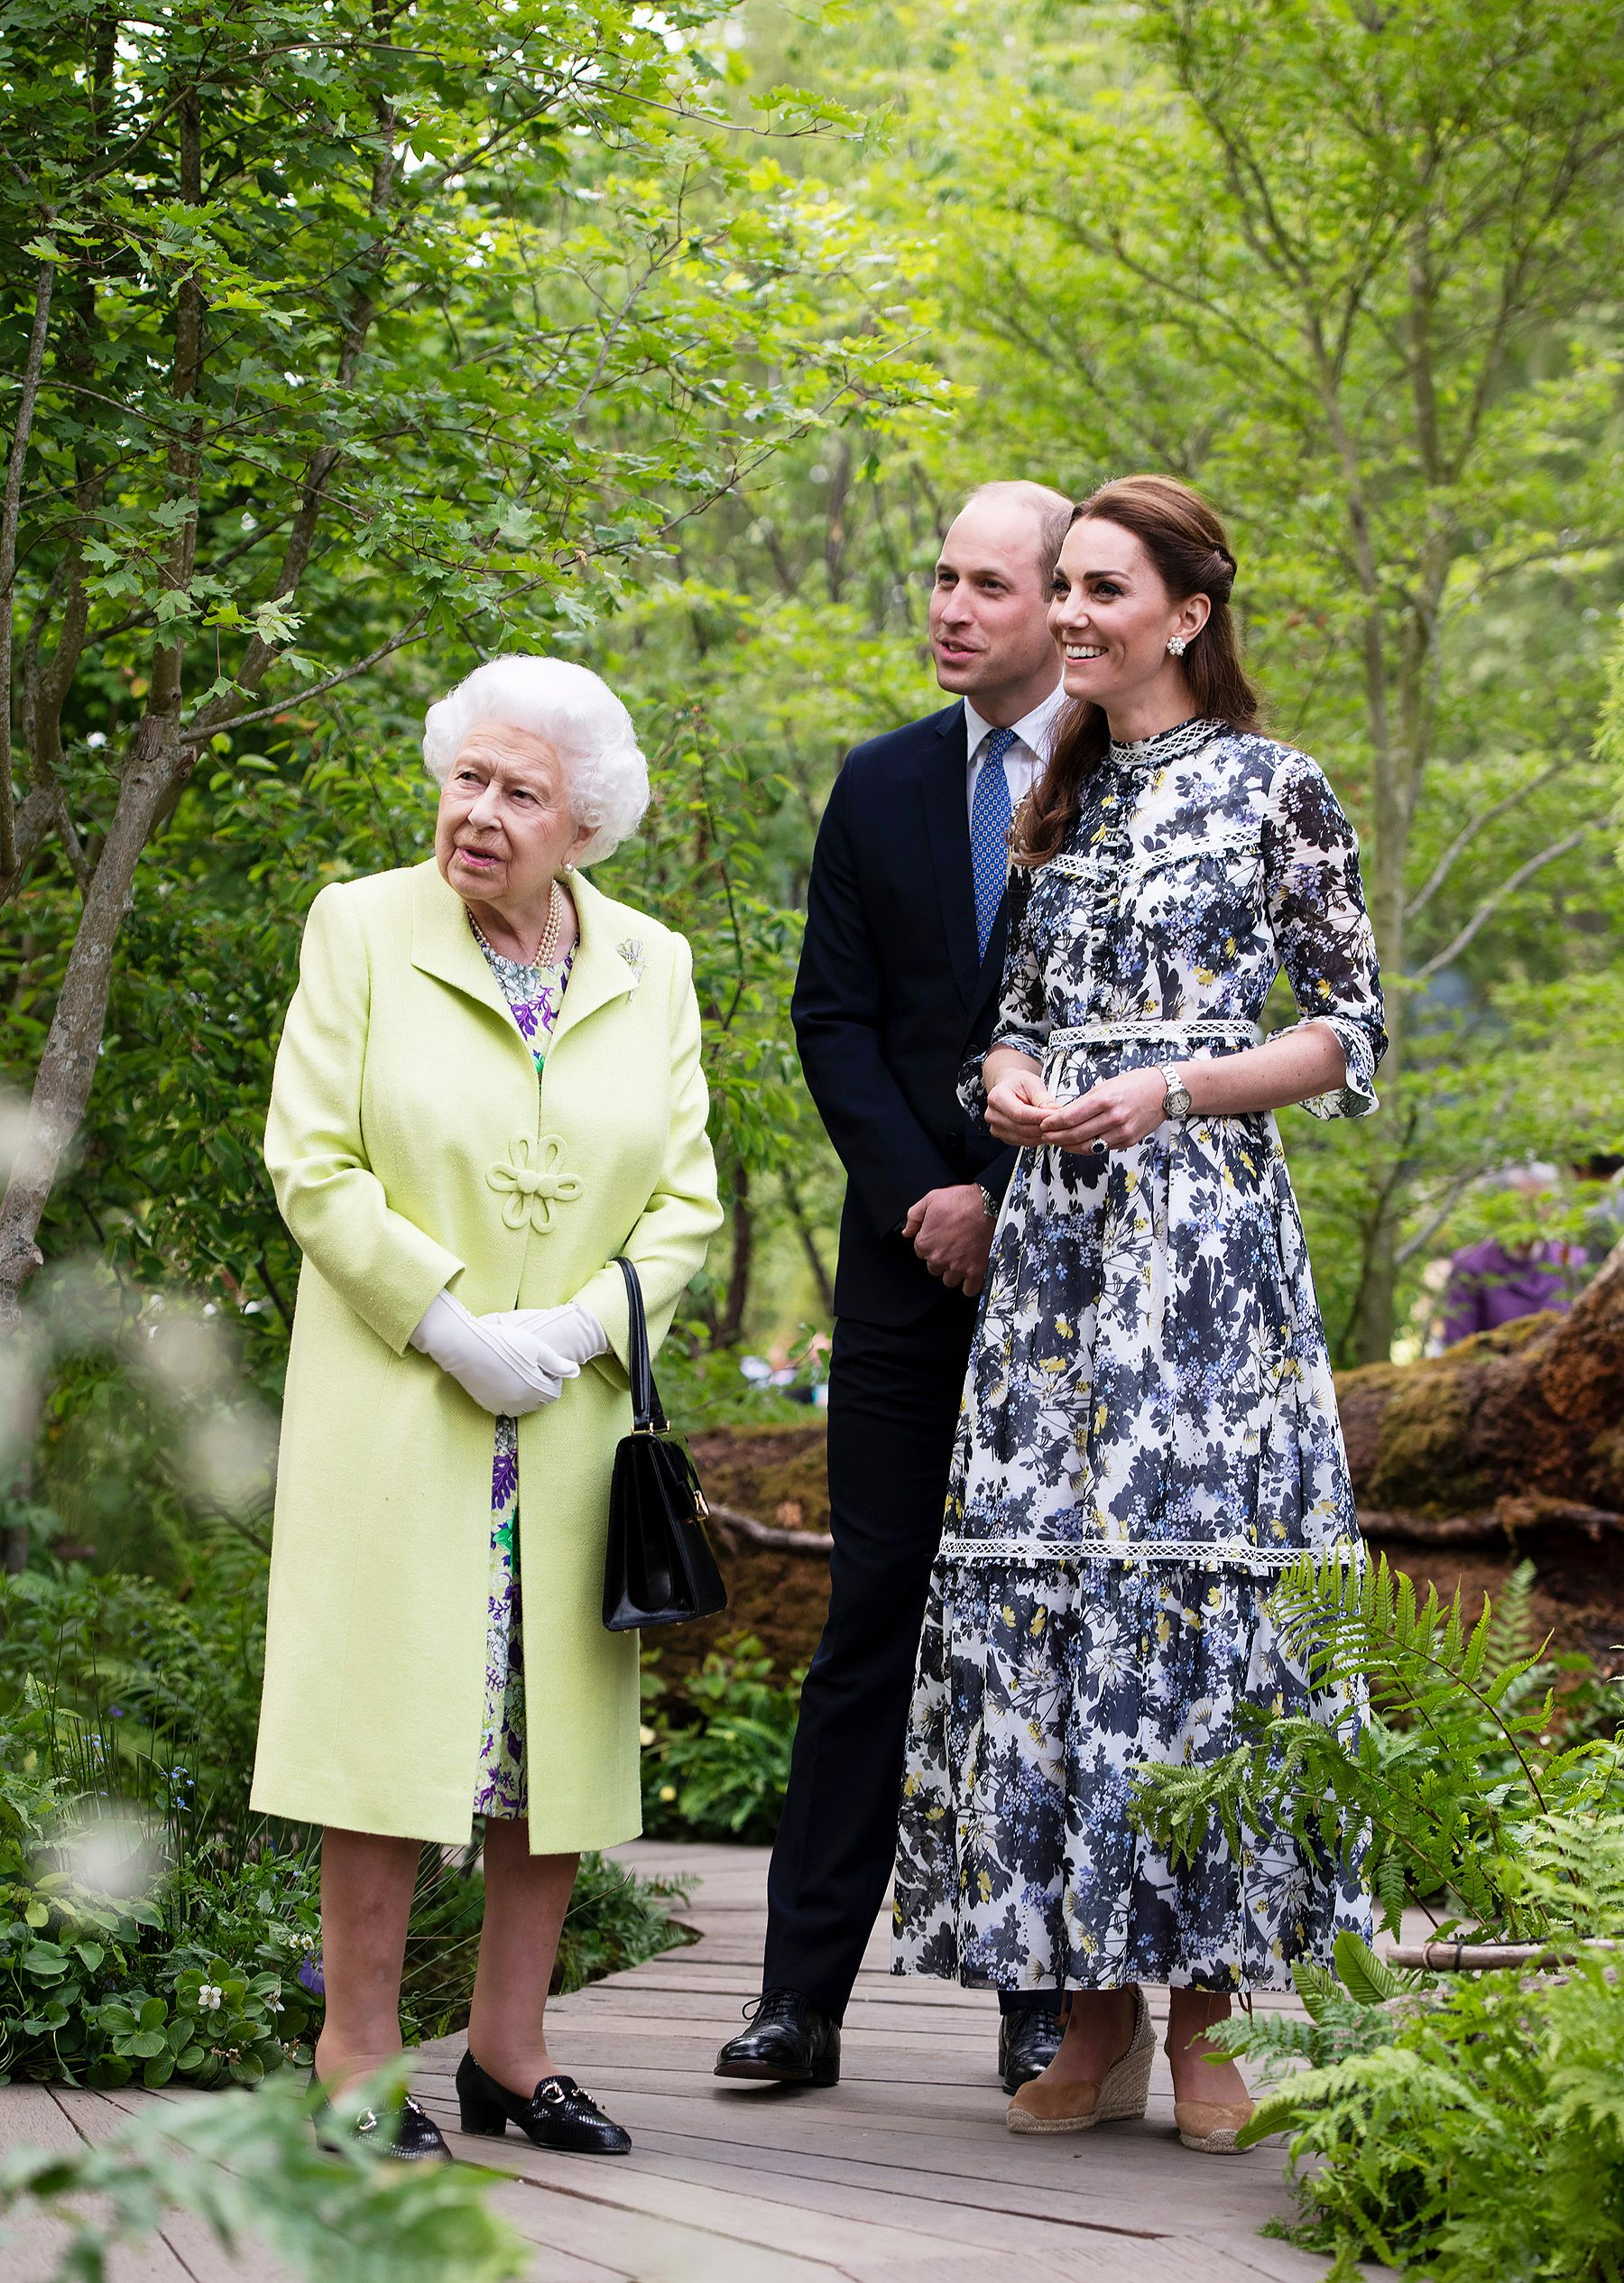 Kate Middleton Shows Queen Elizabeth Her New Garden See The Queen And Future Queen Together Chelsea Flower Show Kate Middleton Outfits Kate Middleton